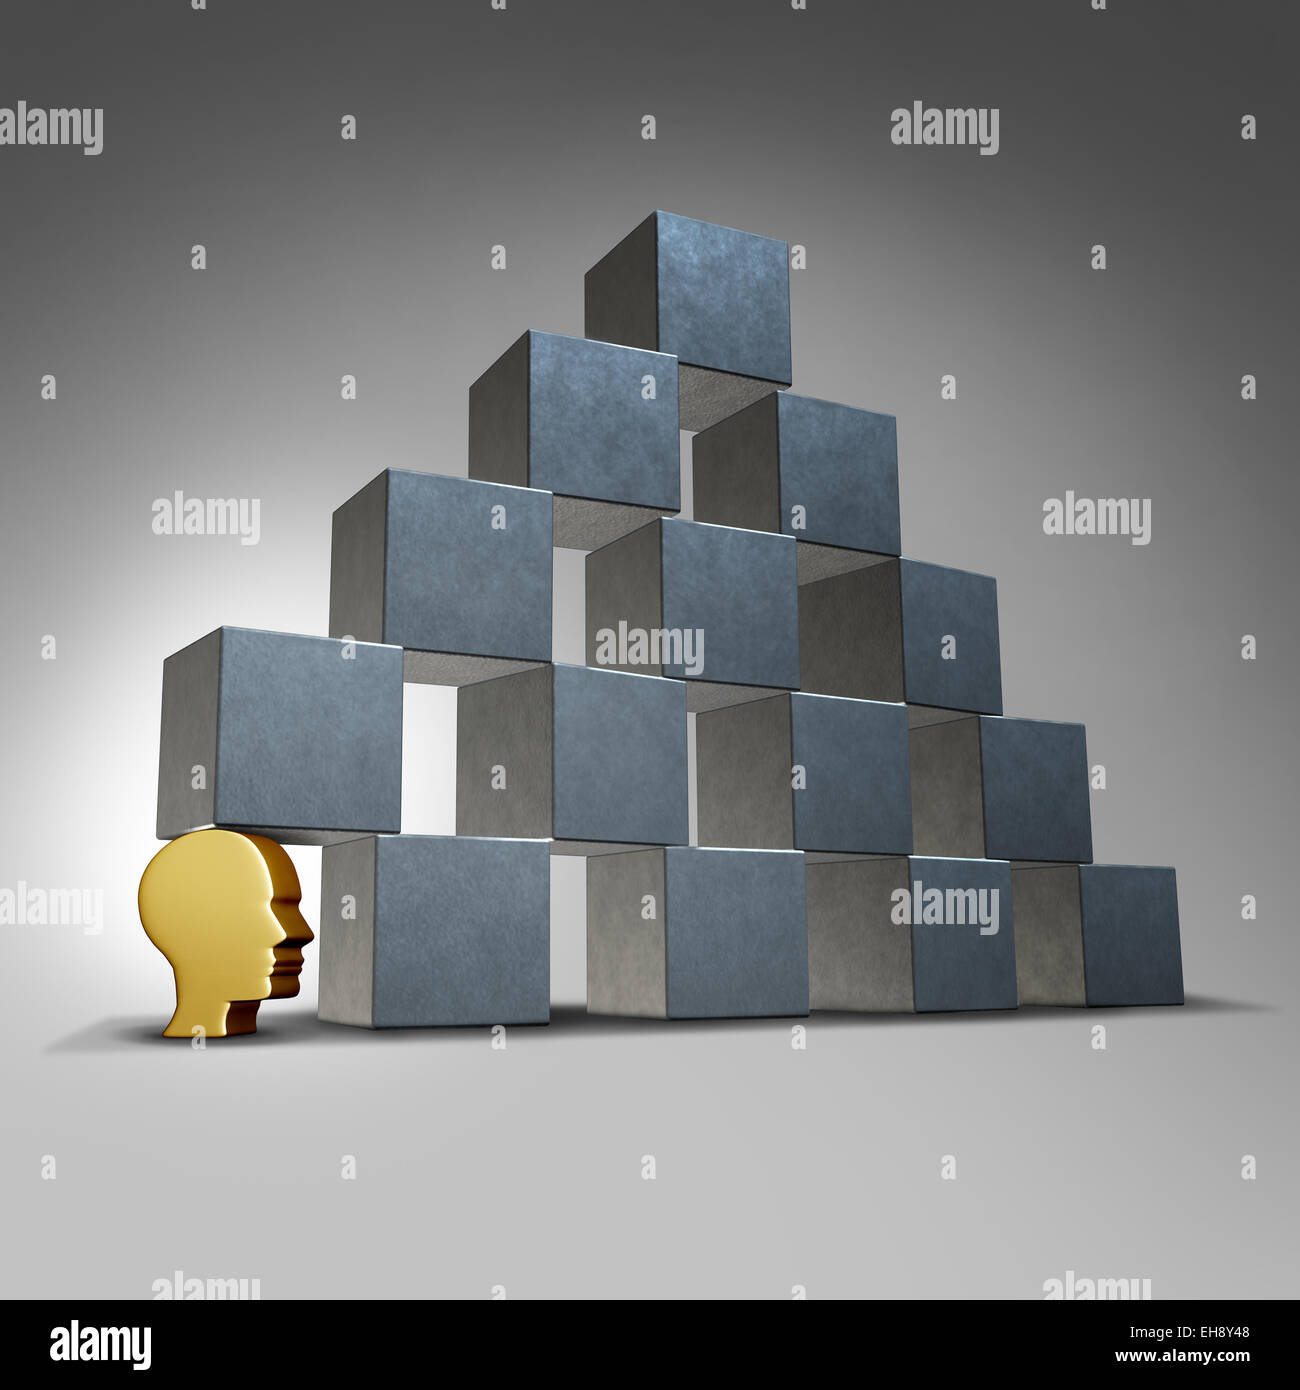 Essential services and crucial support concept as a head icon supporting a group of blocks in a pyramid formation - Stock Image